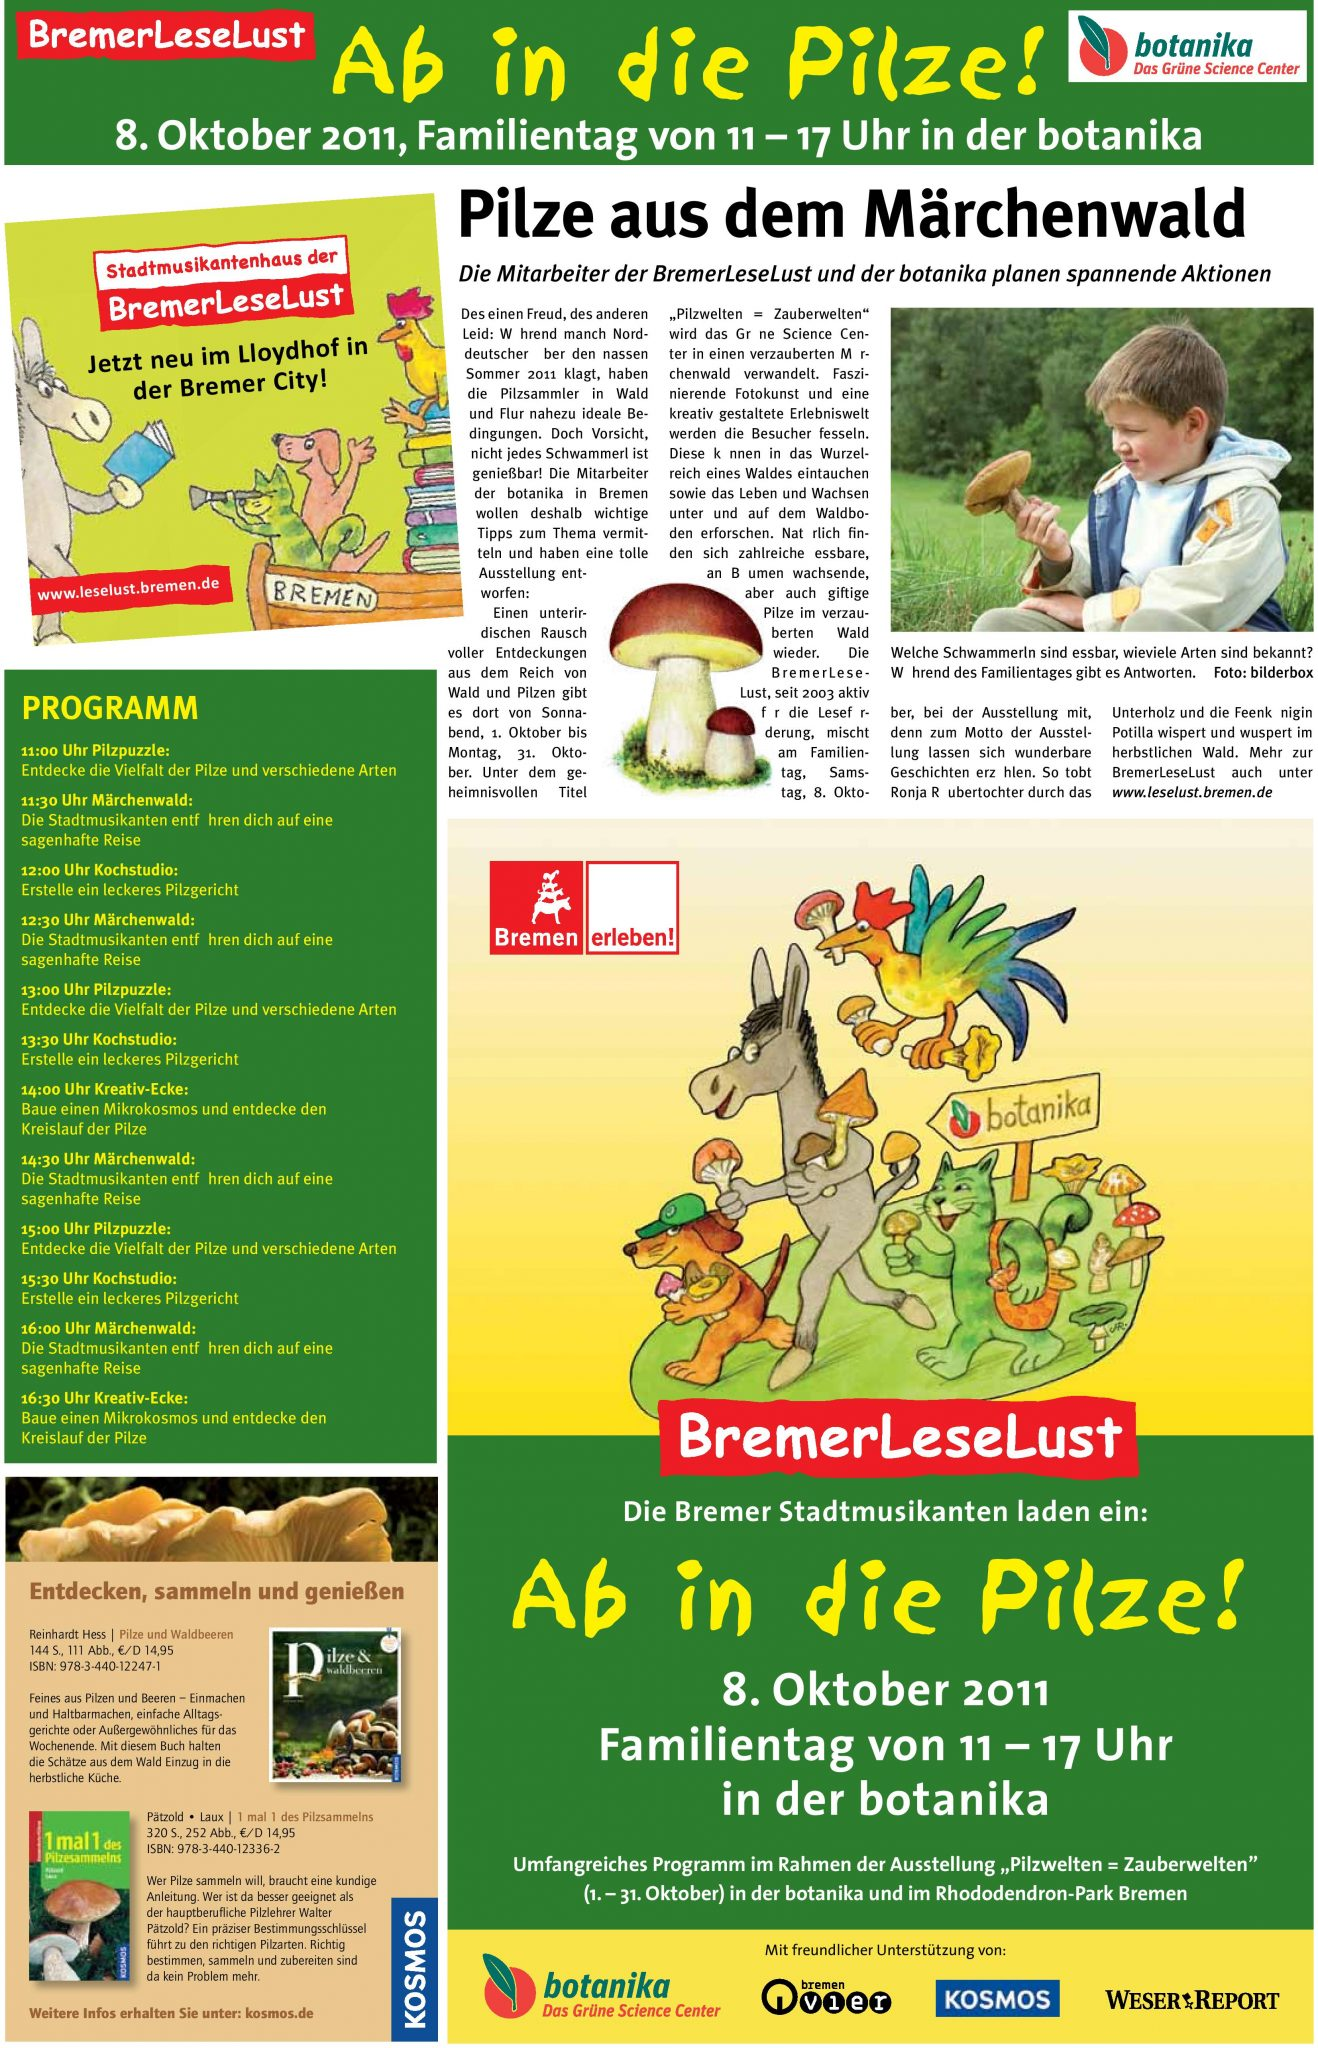 Archiv_2011_BremerLeseLust_ab_in_die_Pilze-page-001